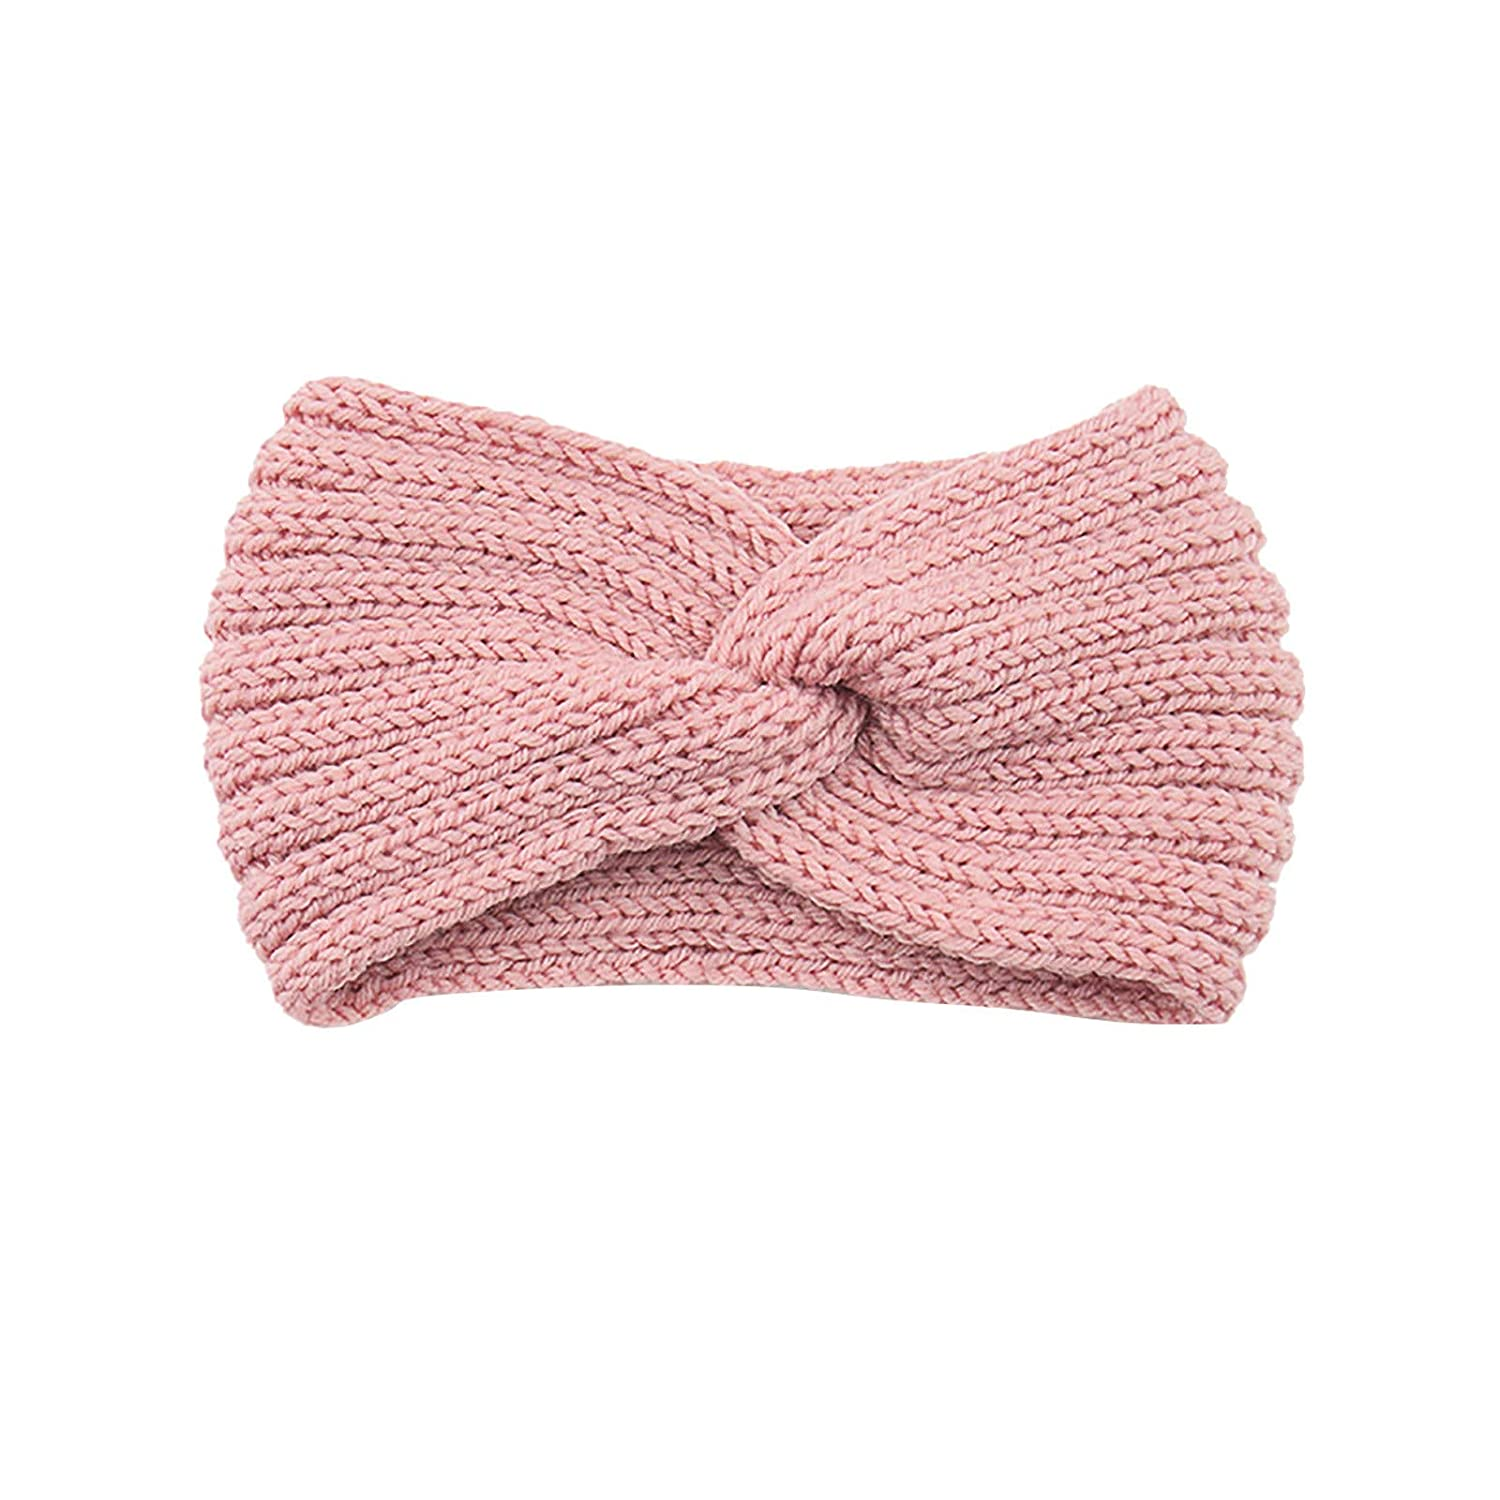 Thatso Winter Headbands for Women, Ear Warmer Headband with Buttons, Soft Stretchy Thick Cable Knitted Turban Hairband Gift (Pink,One Size)